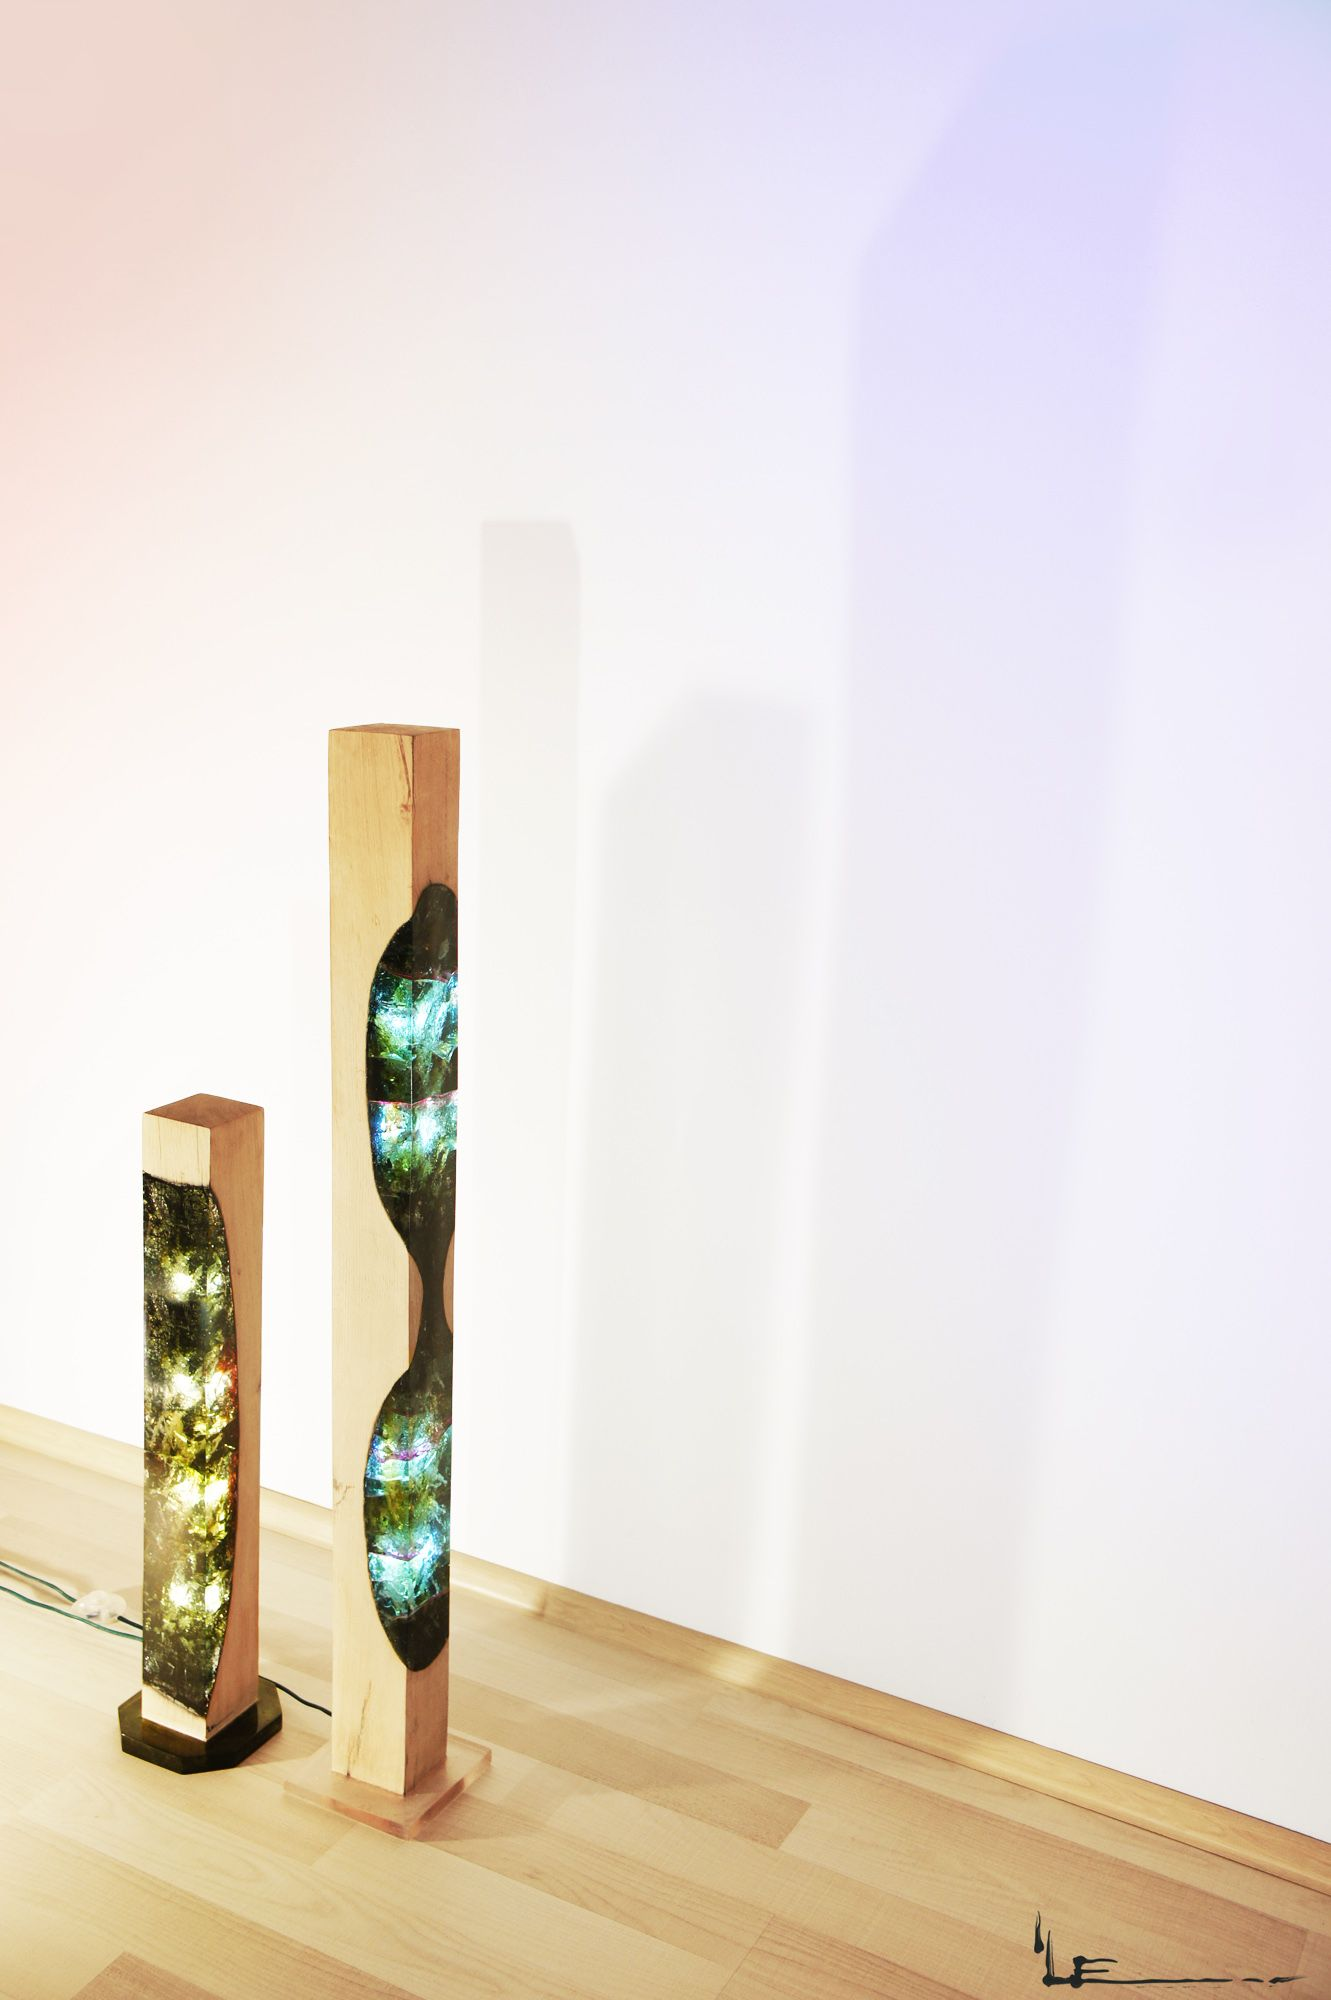 Wood, acrylic glass and light; a fusion between materials. Designer ...